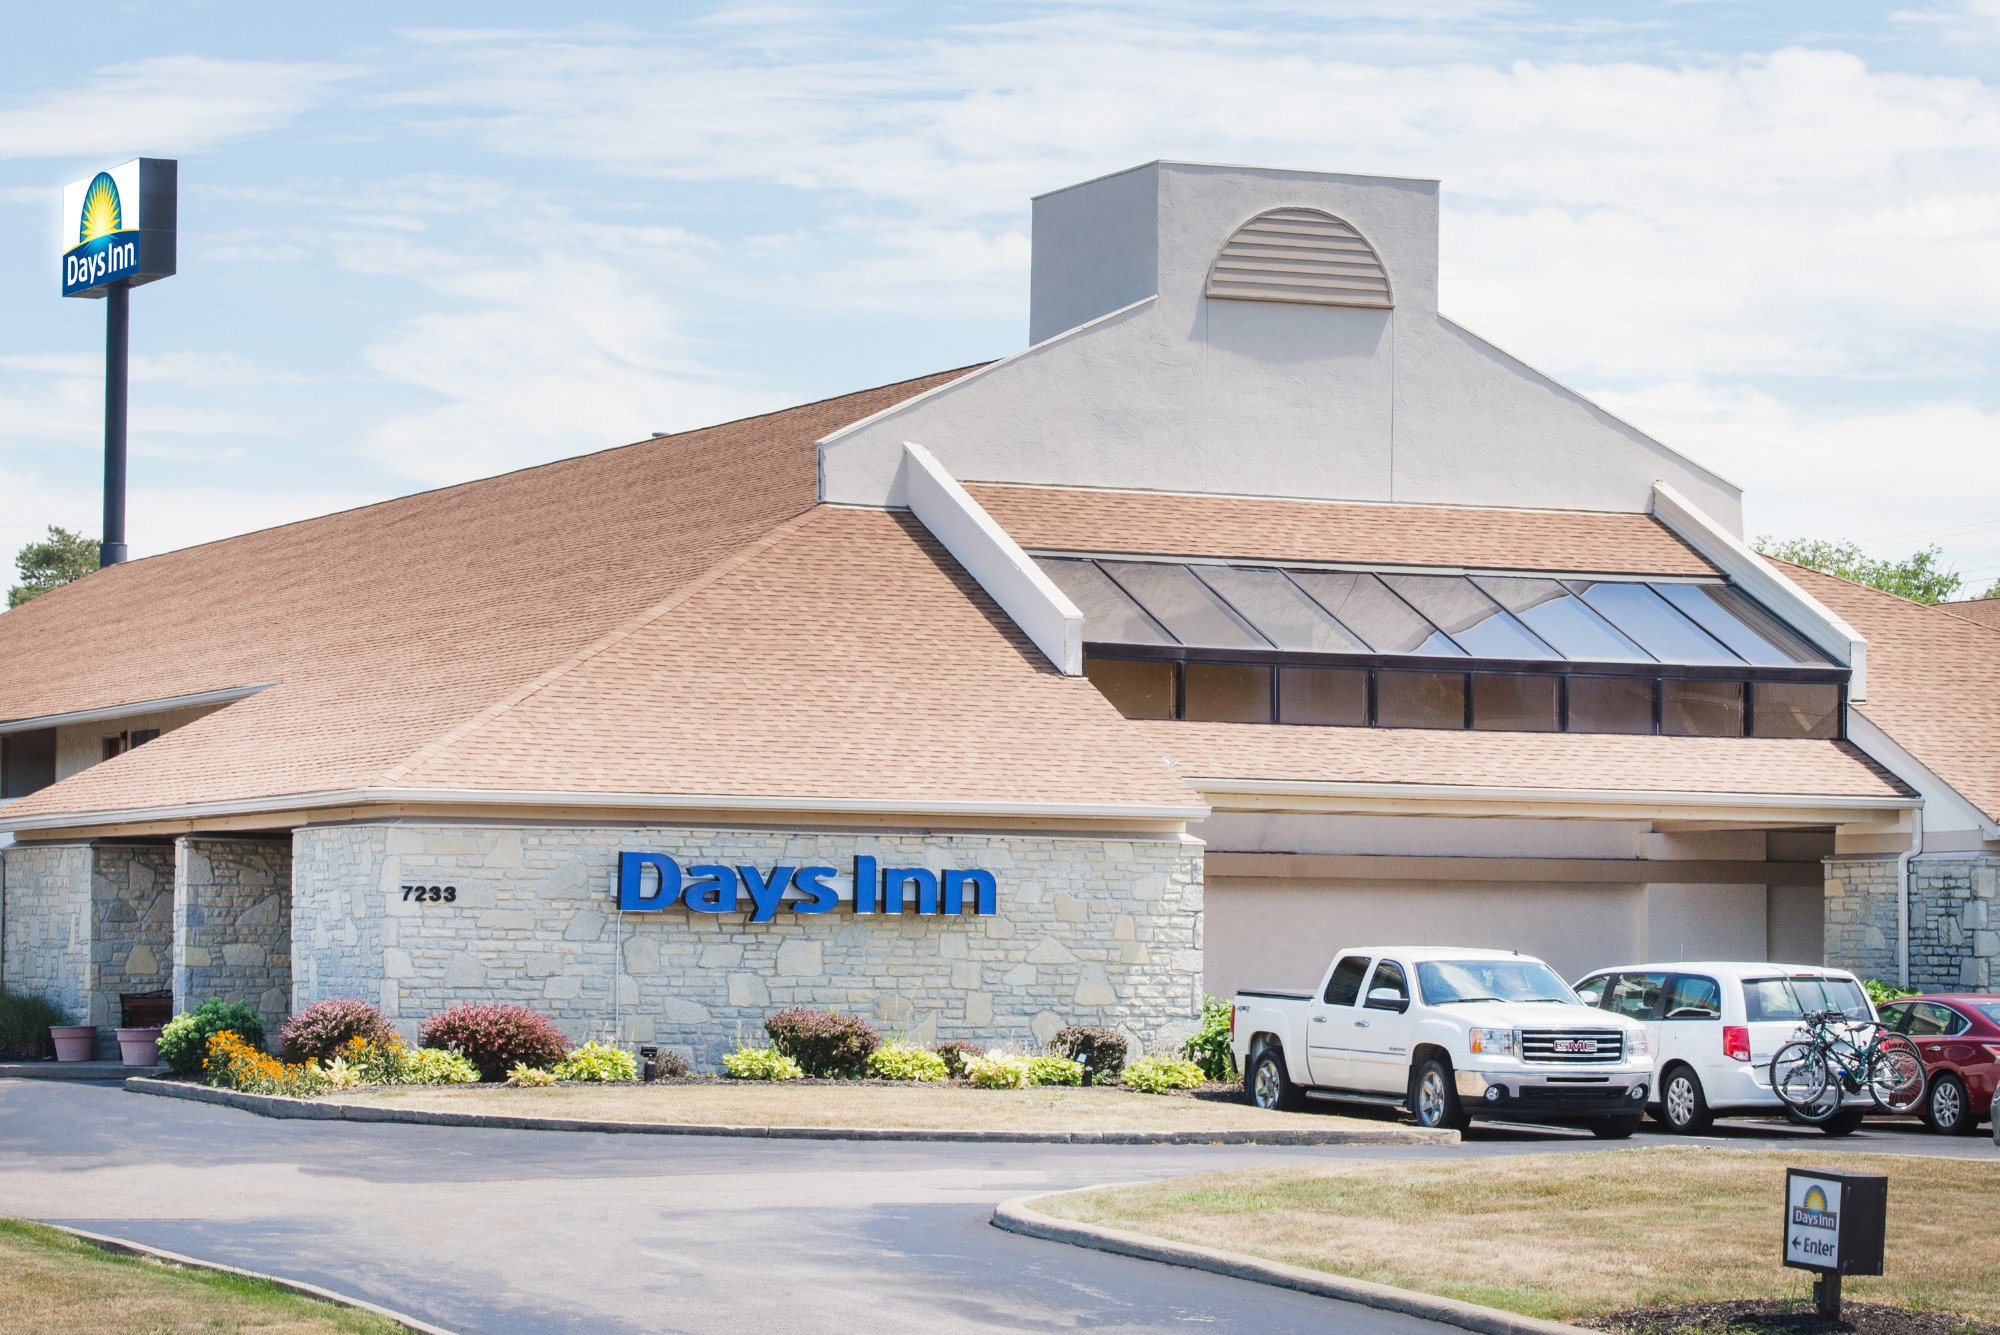 Days Inn Cleveland Airport South